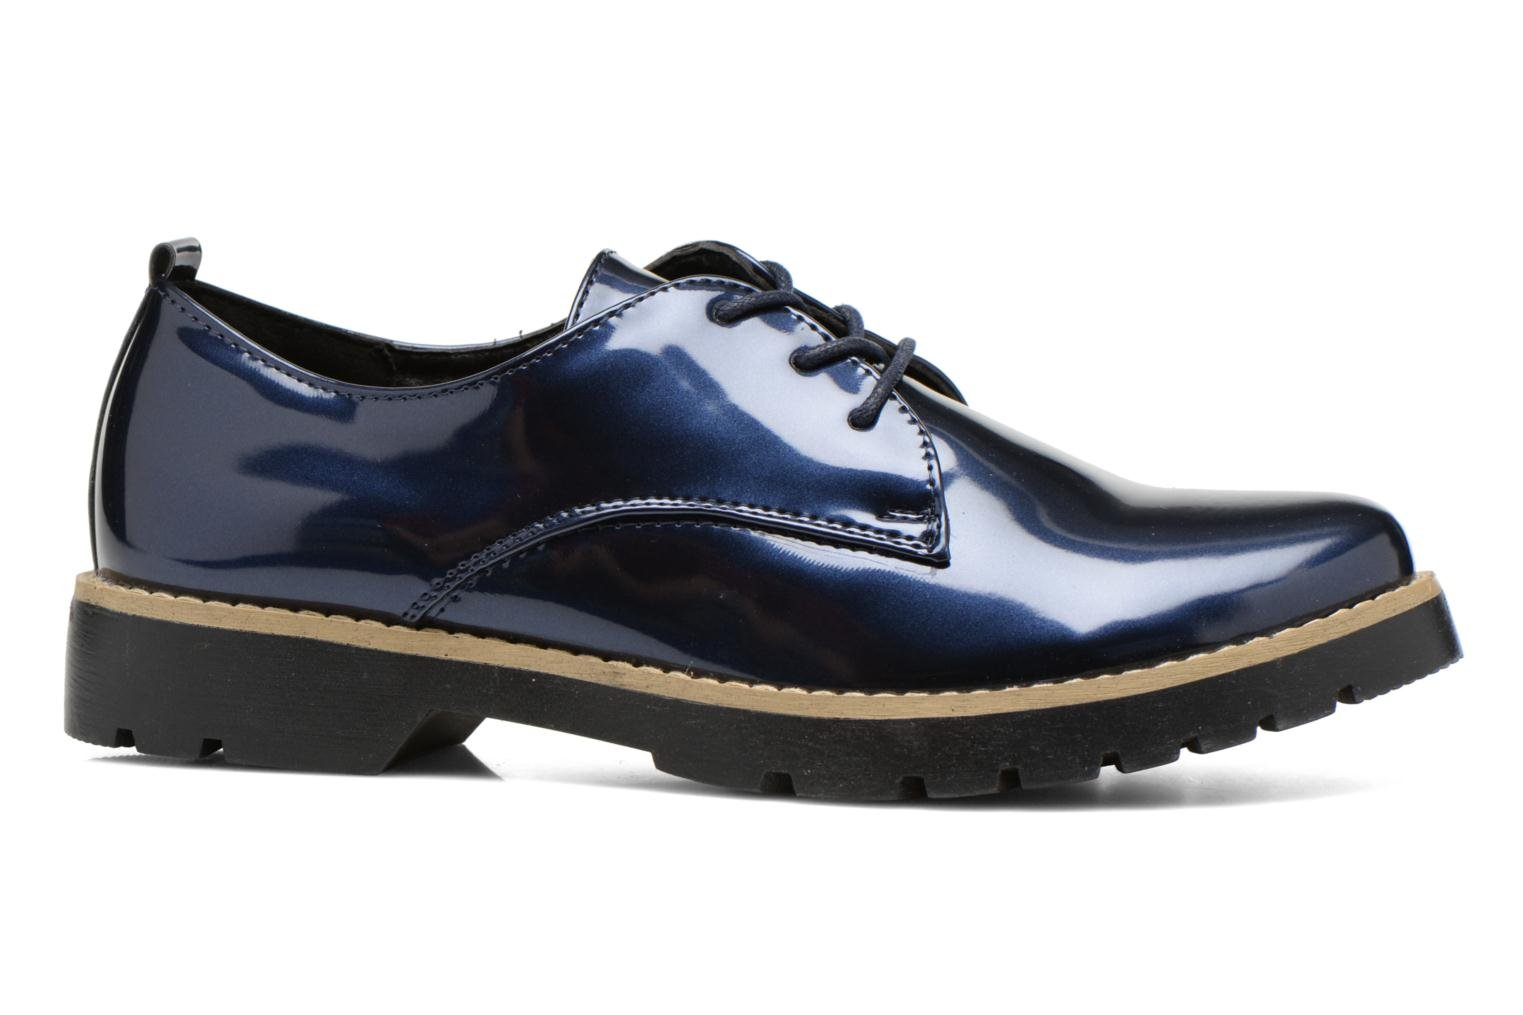 THALY Navy Patent